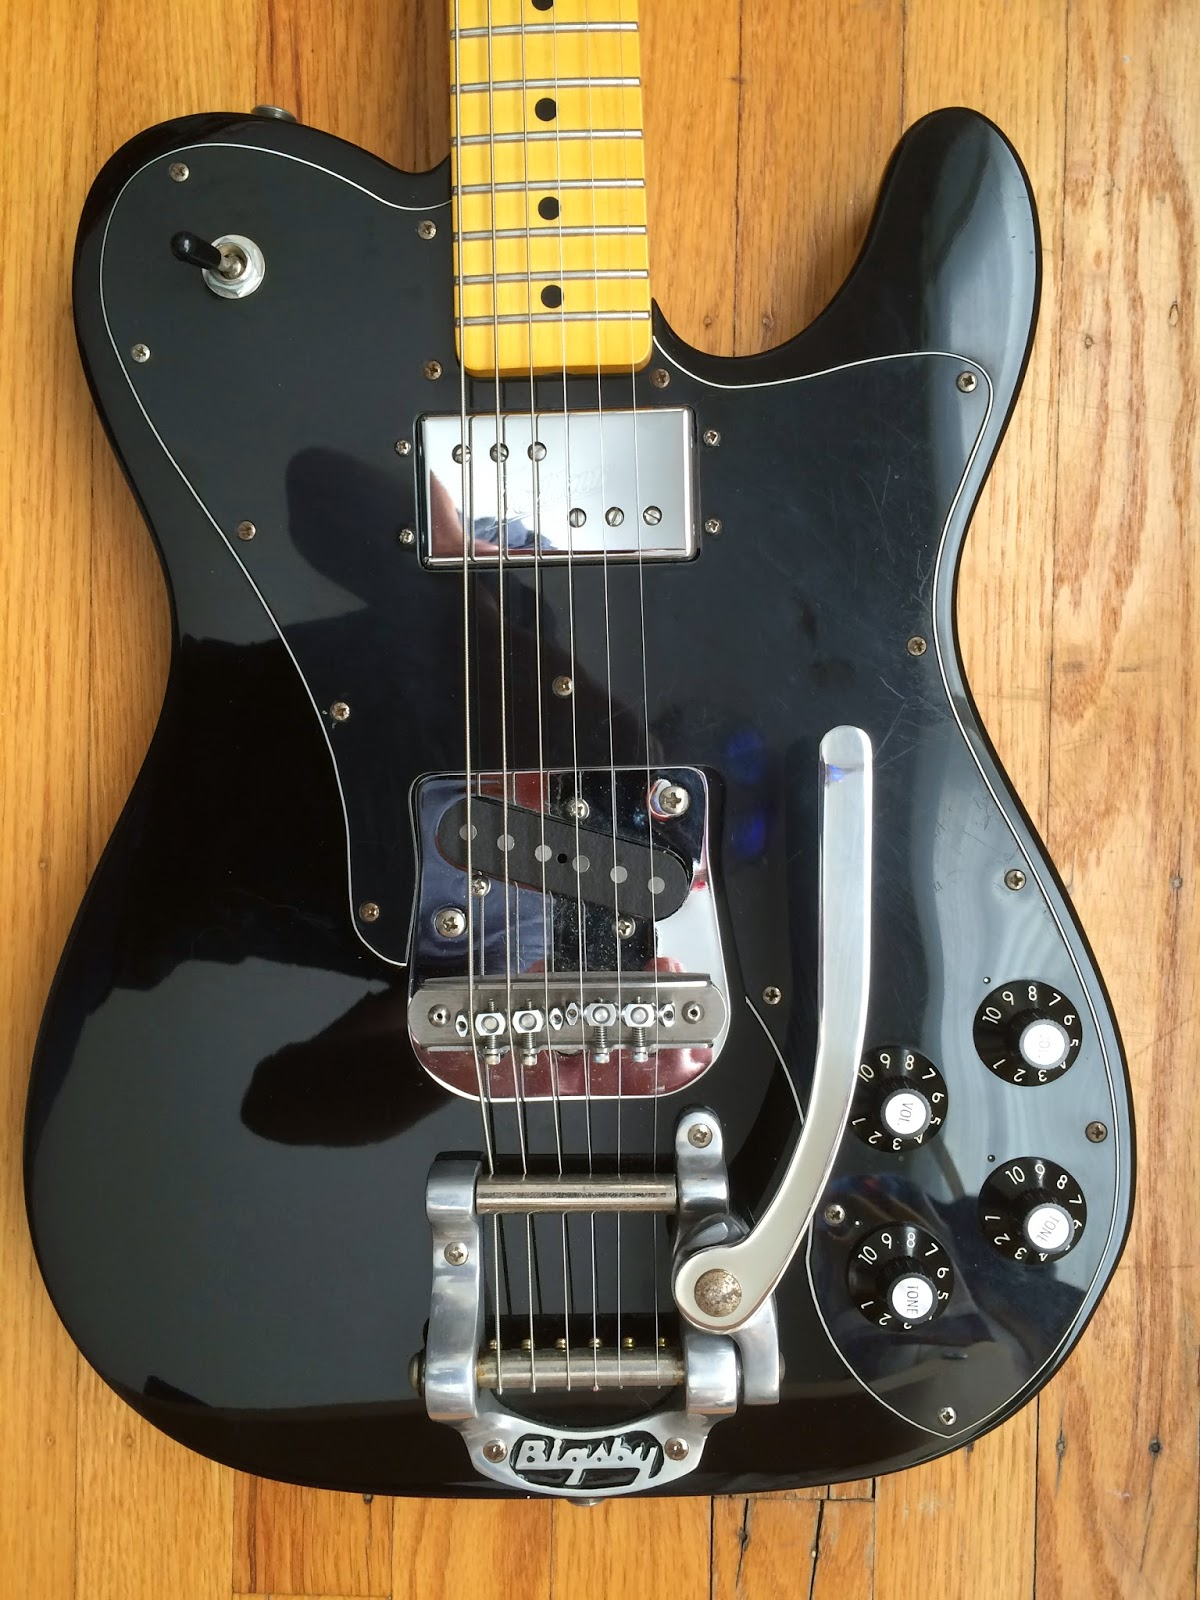 Wiring Diagram For Telecaster Humbucker And Single Coil